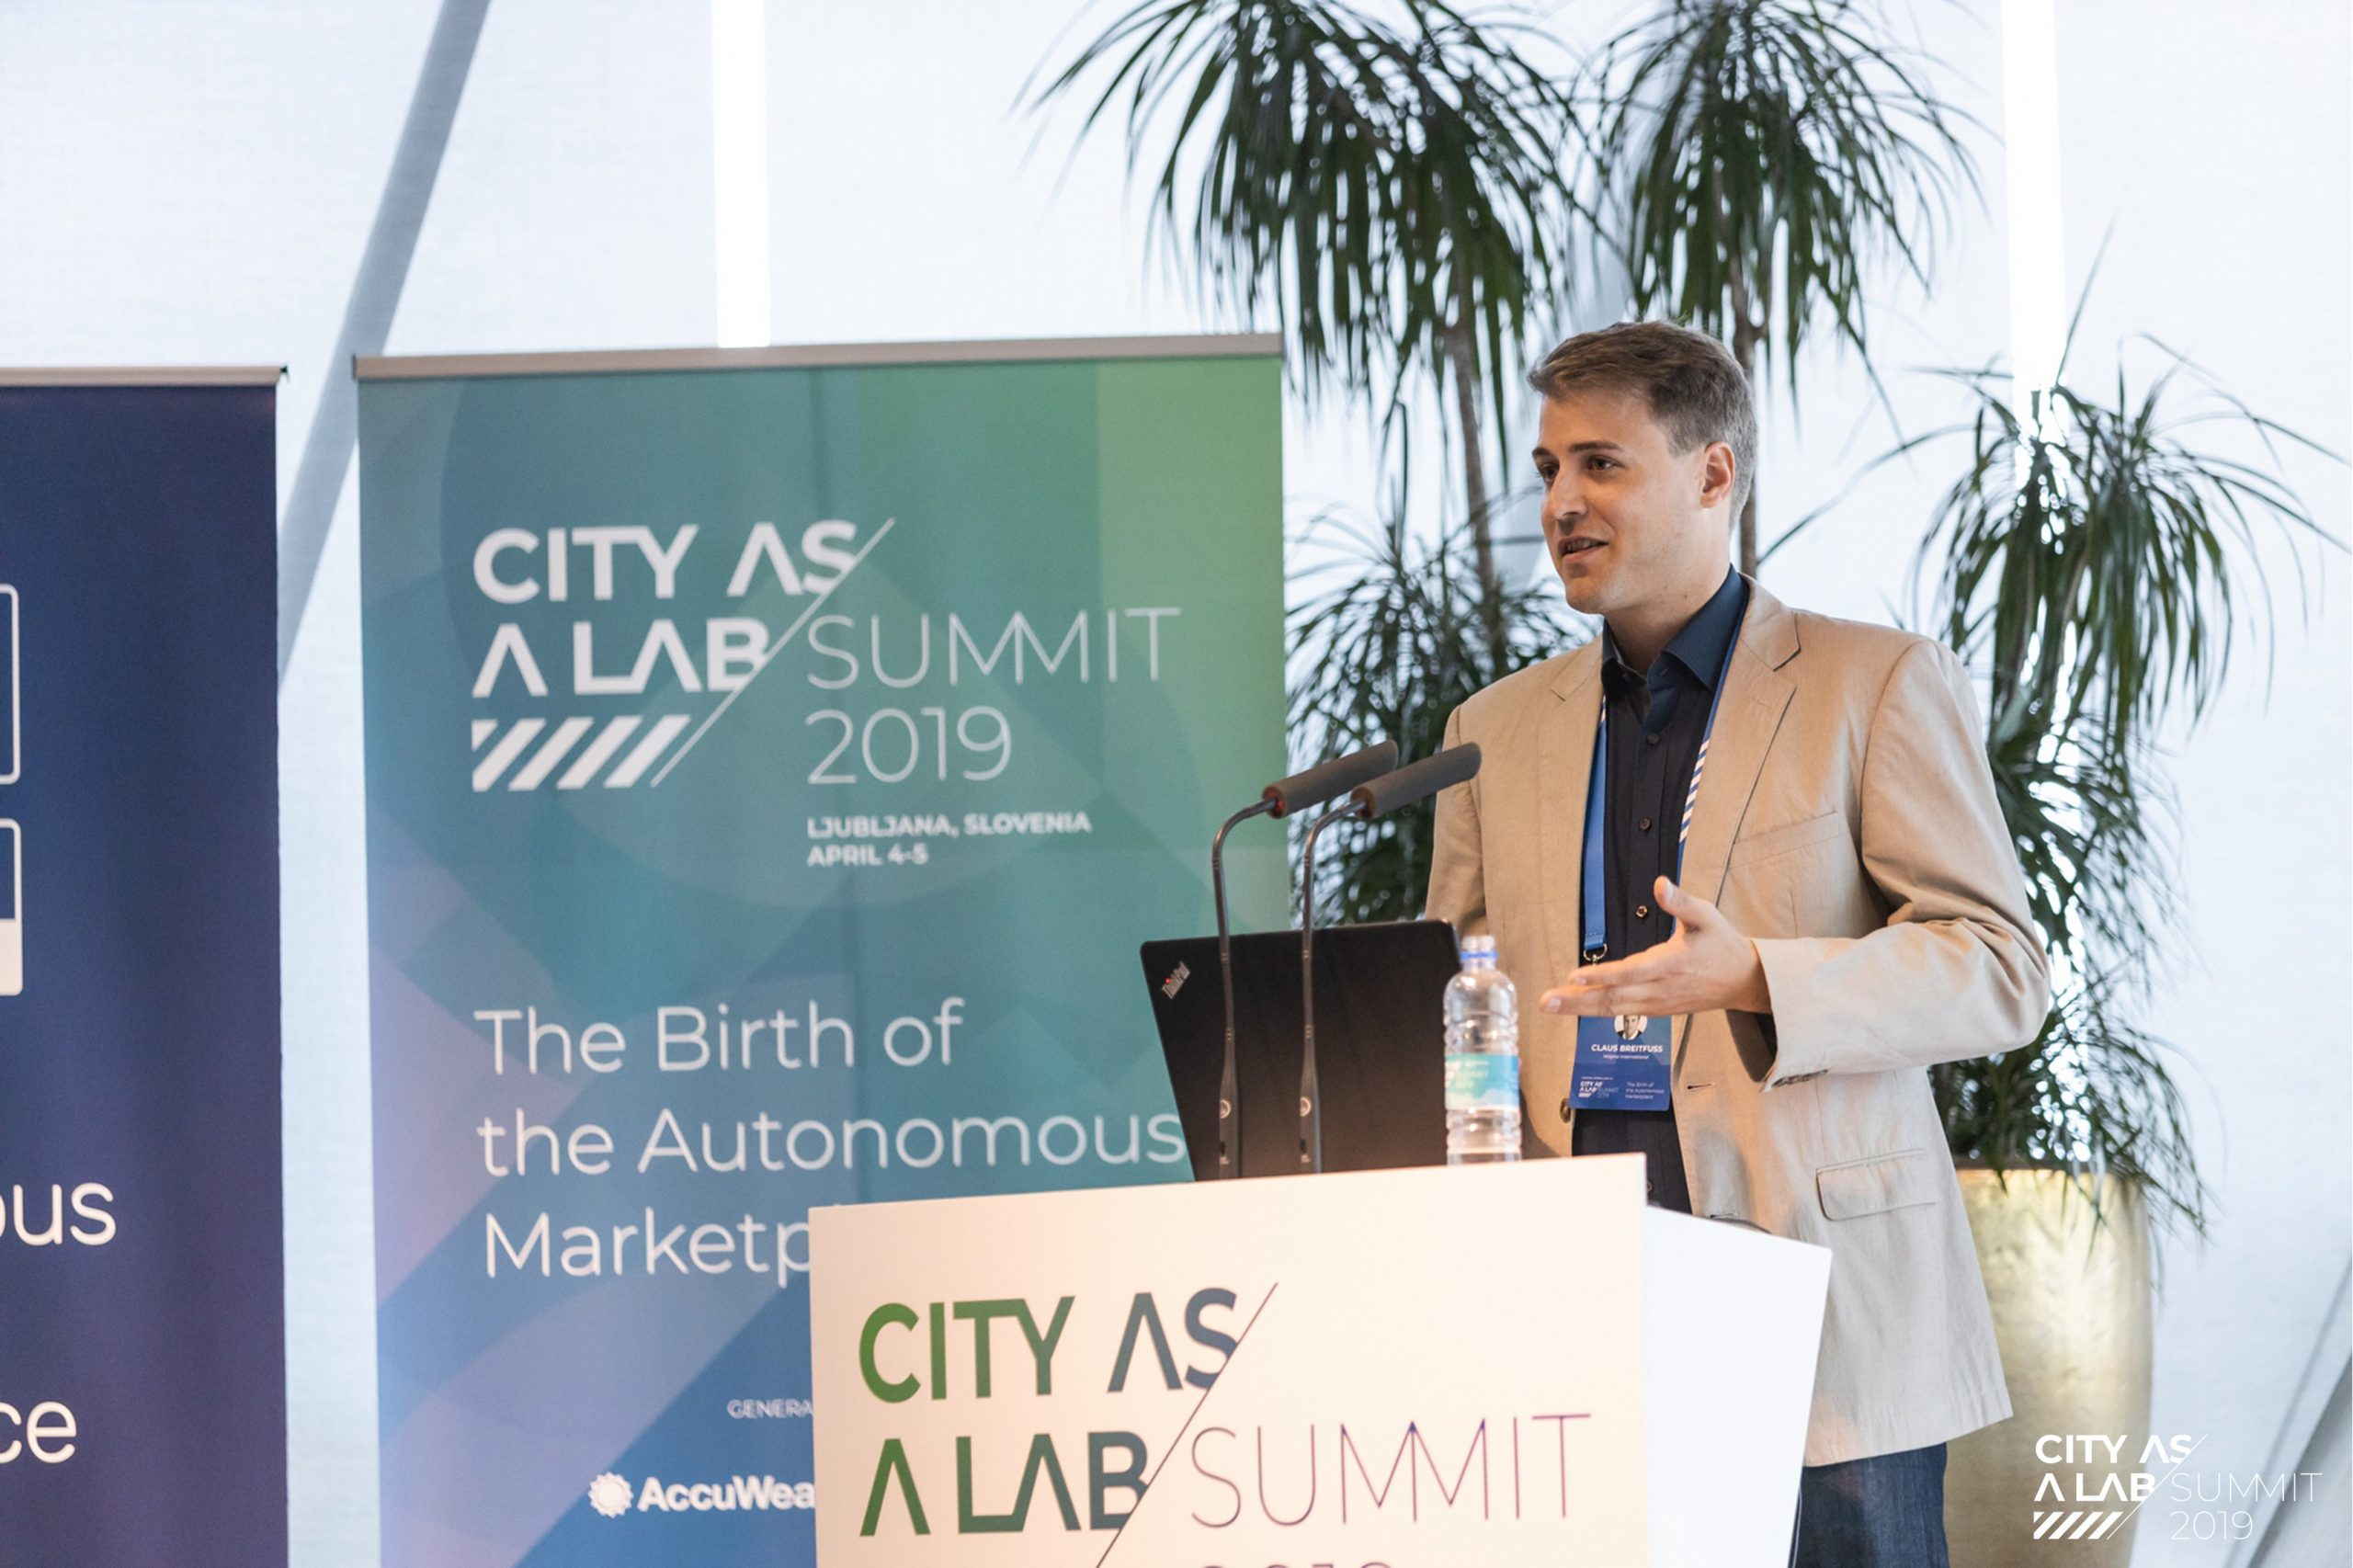 Claus Breitfuss, City as a Lab Summit 2019